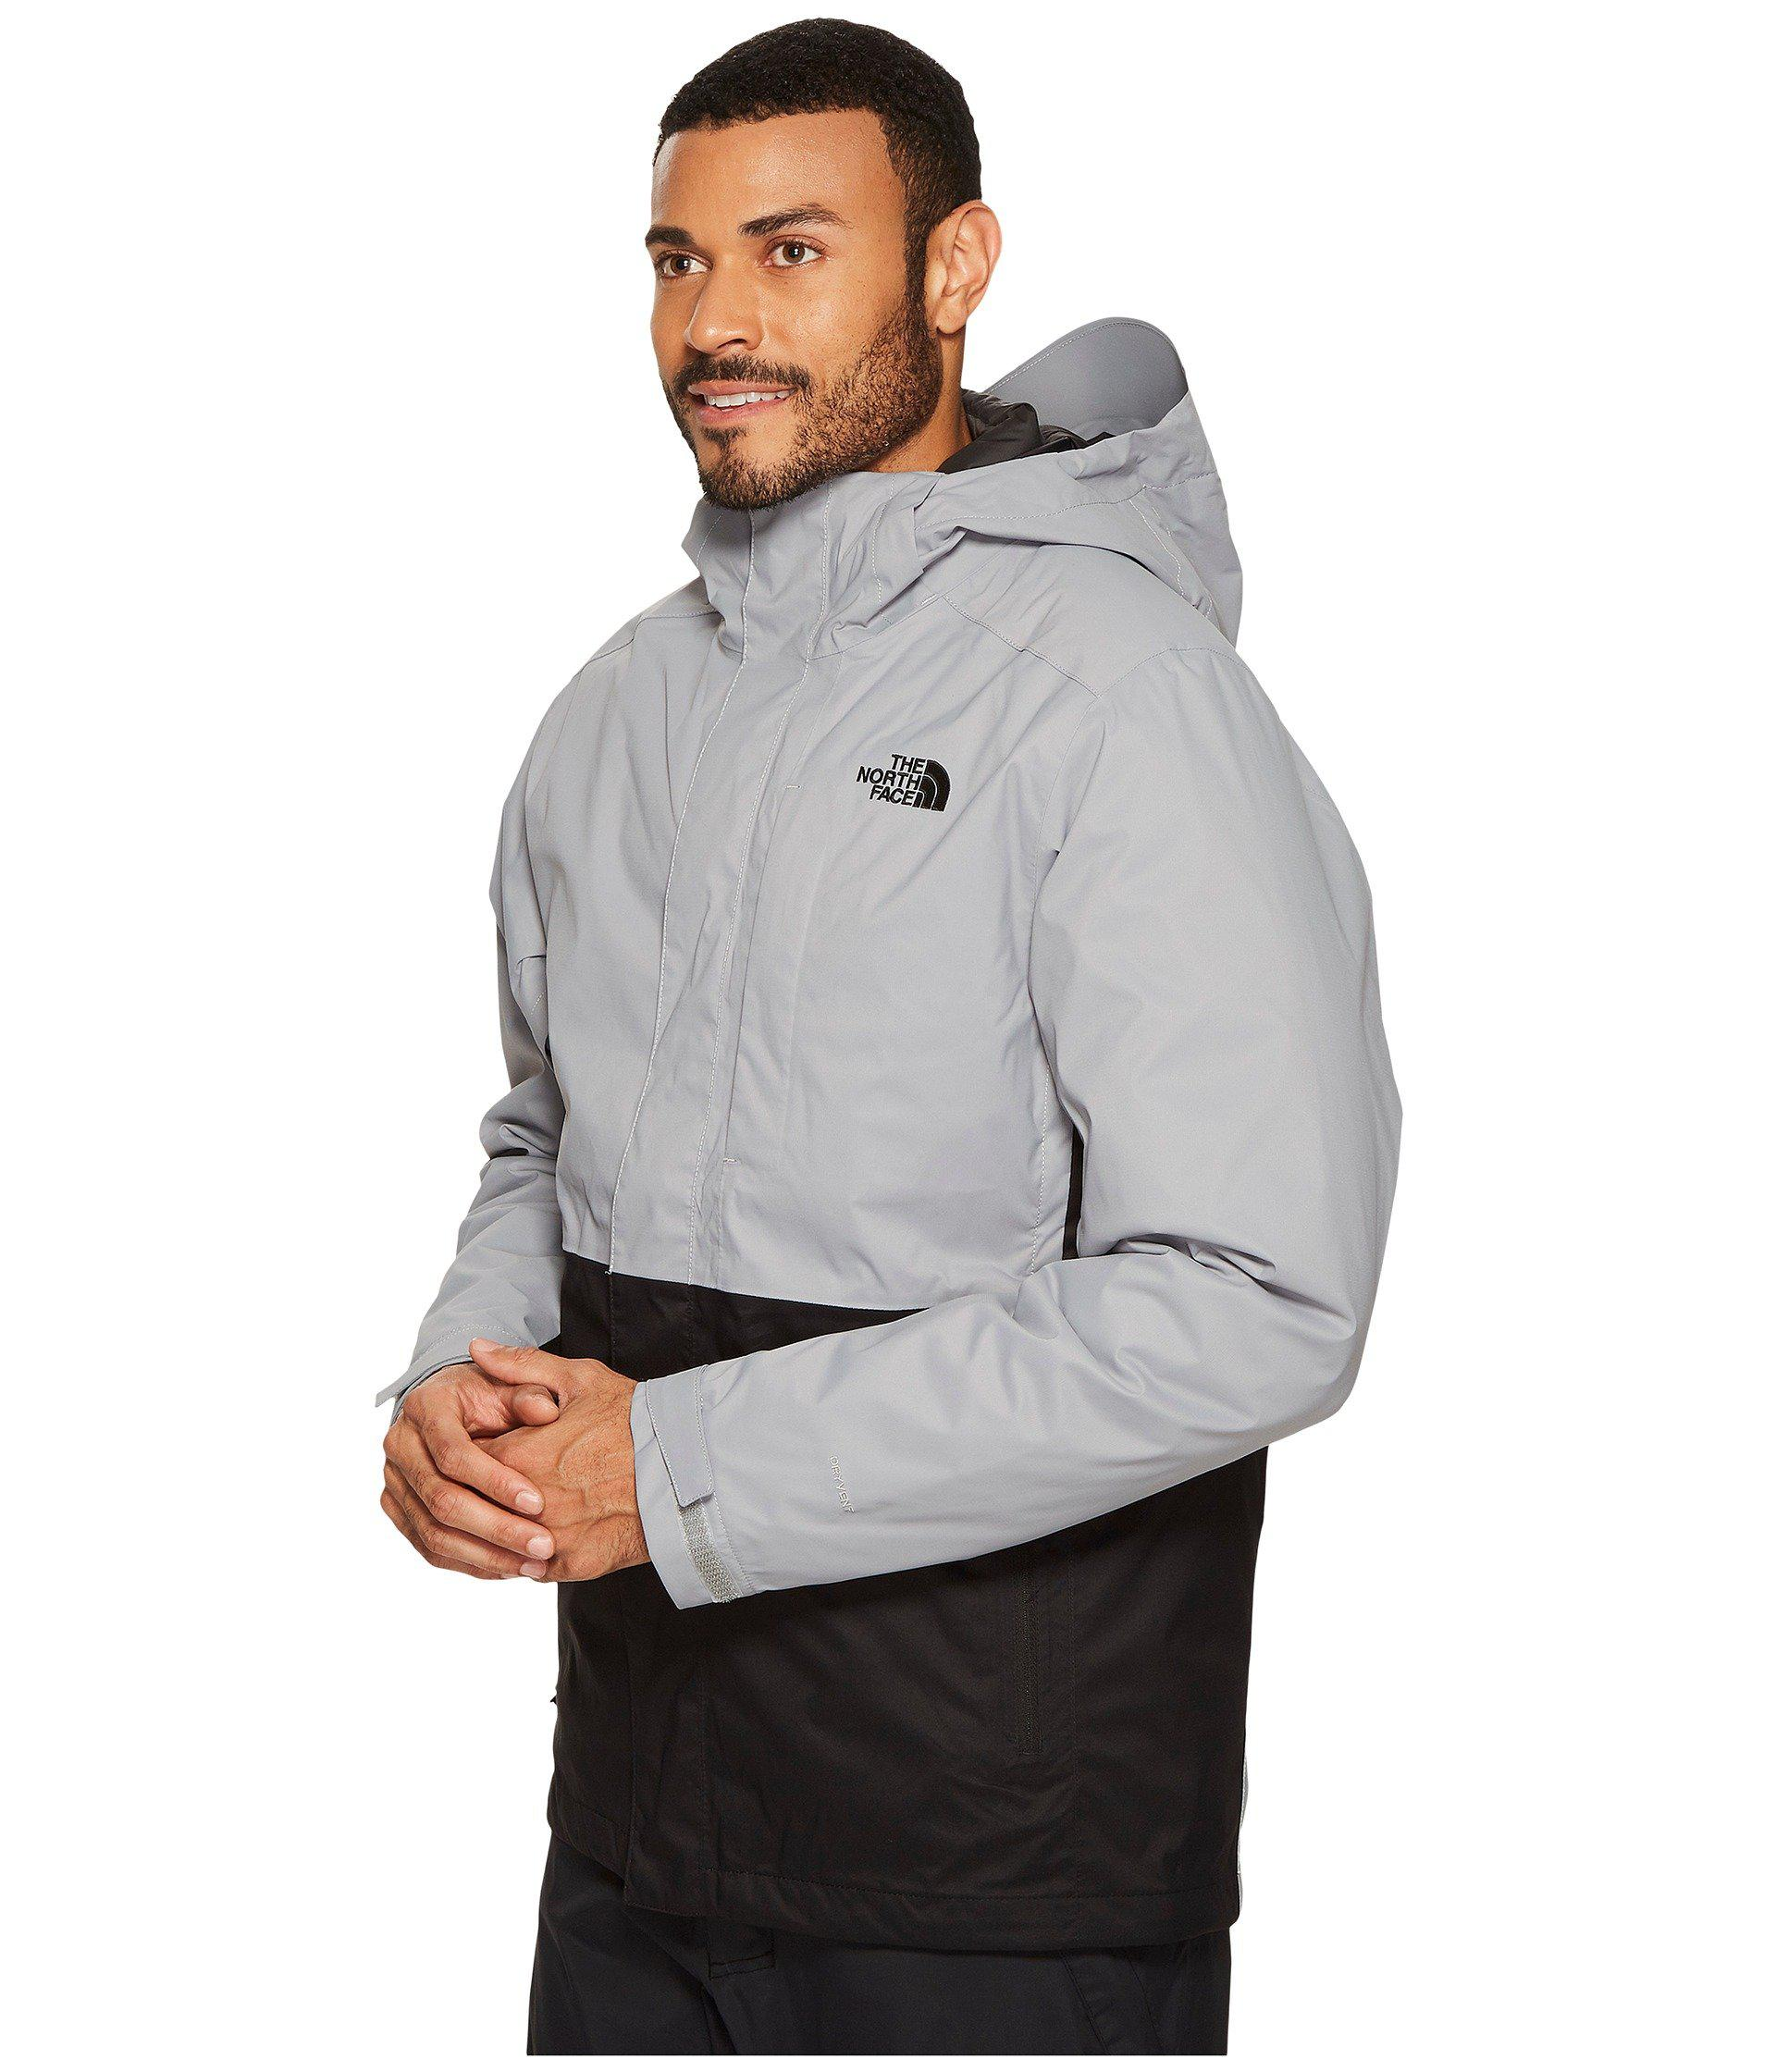 lyst the north face altier down triclimate jacket in gray for men rh lyst com